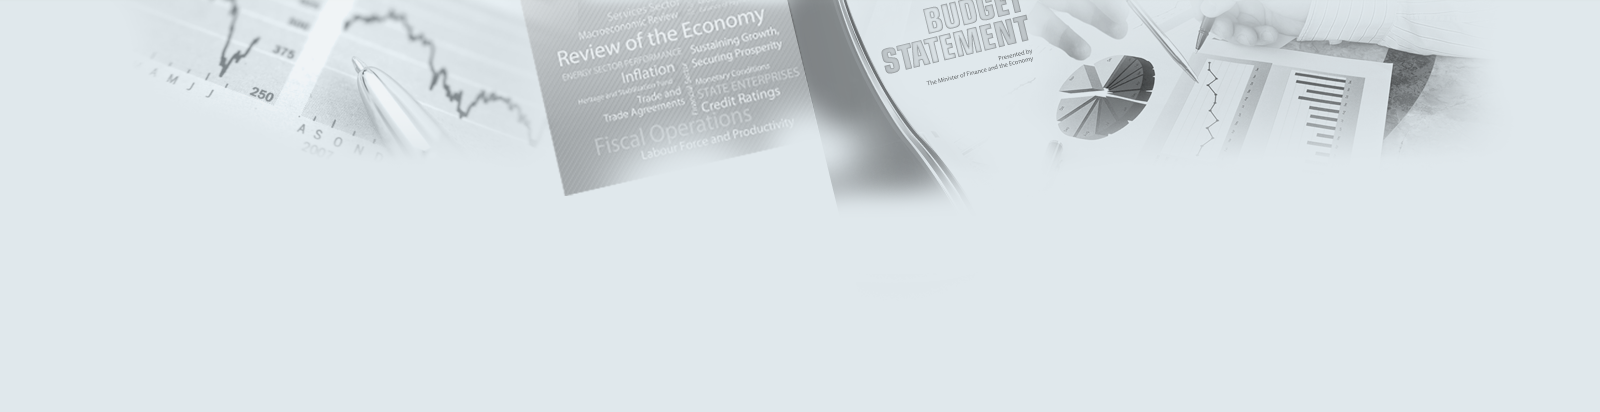 Ministry of Finance -